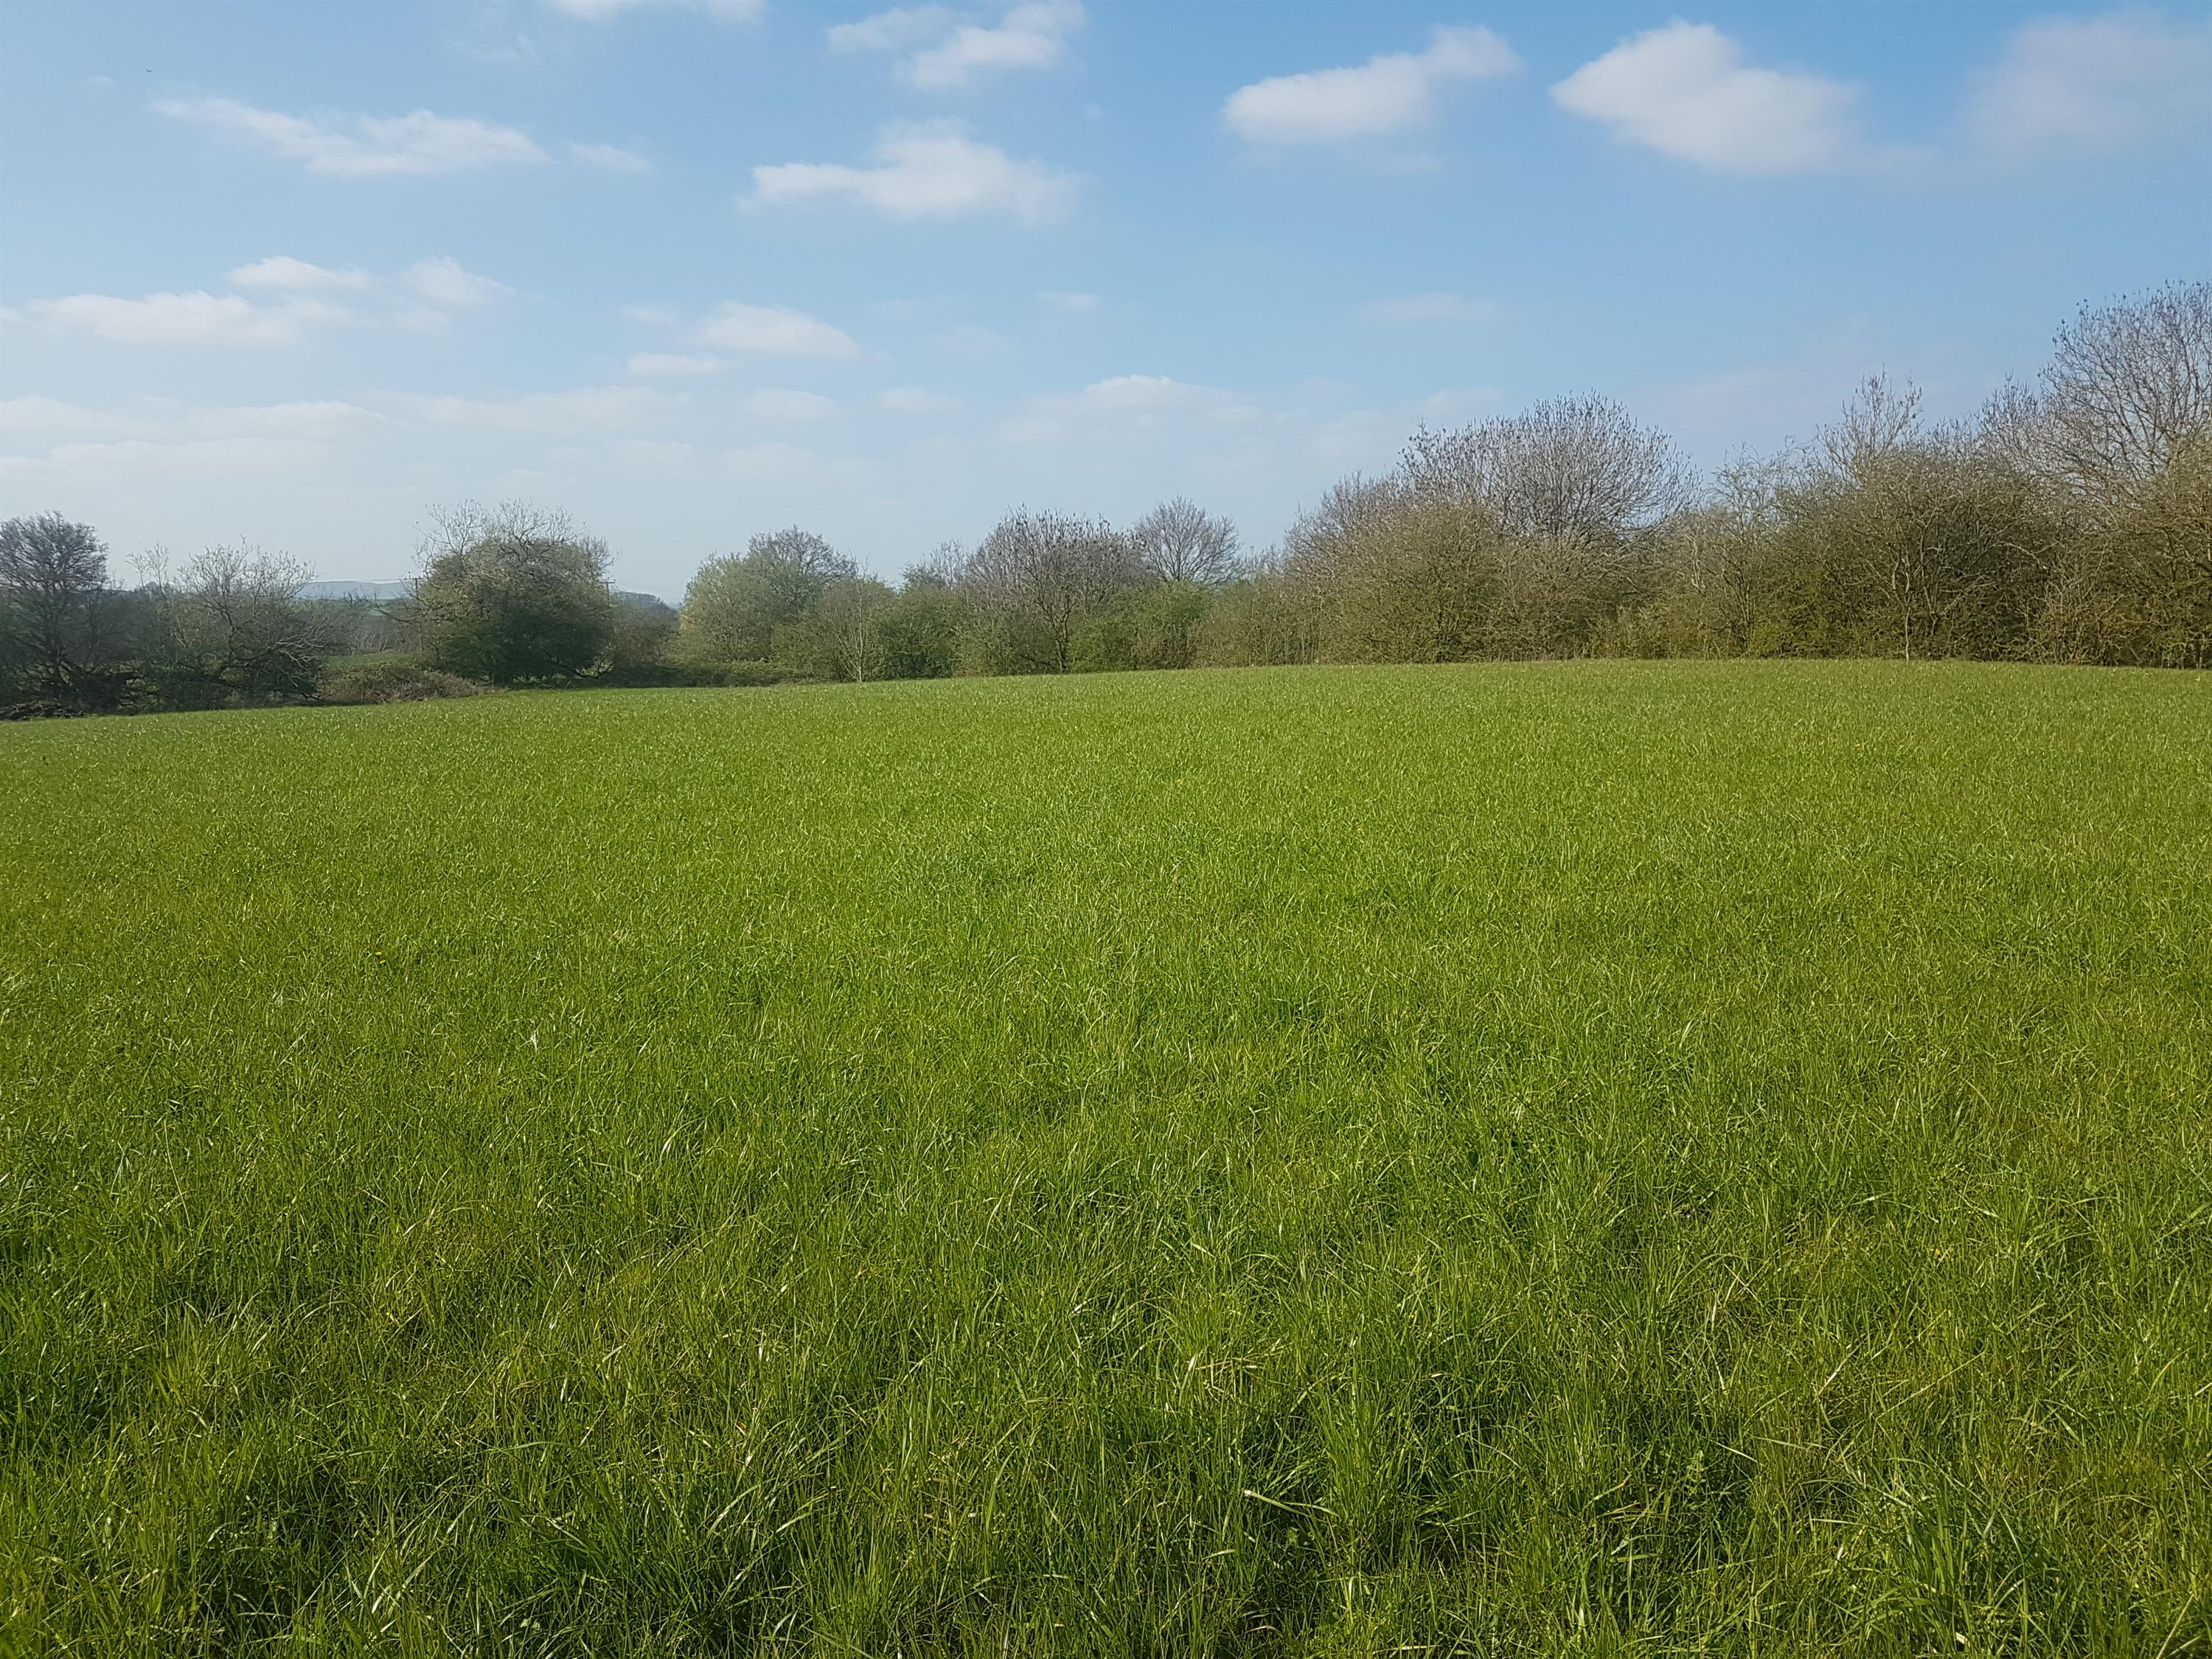 Land at Radway, Adjacent To The A4013, Withington, Hereford, HR1 3ND